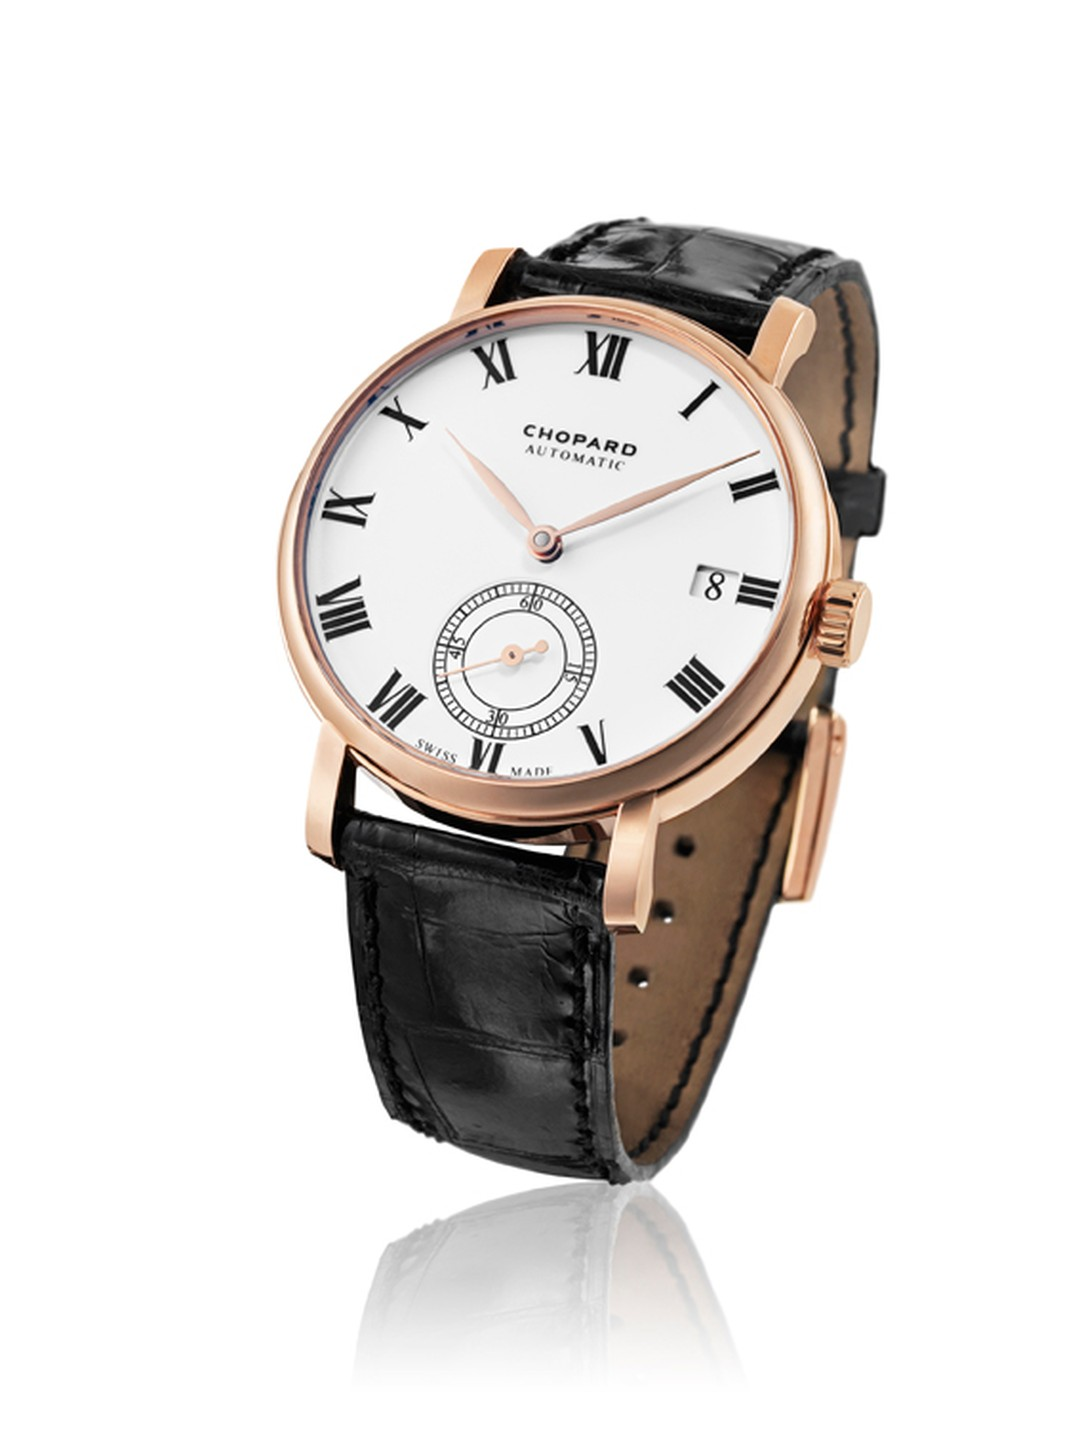 The Chopard Classic Manufacture watch in rose gold worn by Eddie Redmayne to the Golden Globes 2015. The movement, produced entirely by Chopard, is a mechanical self-winding calibre with a 60-hour power reserve.